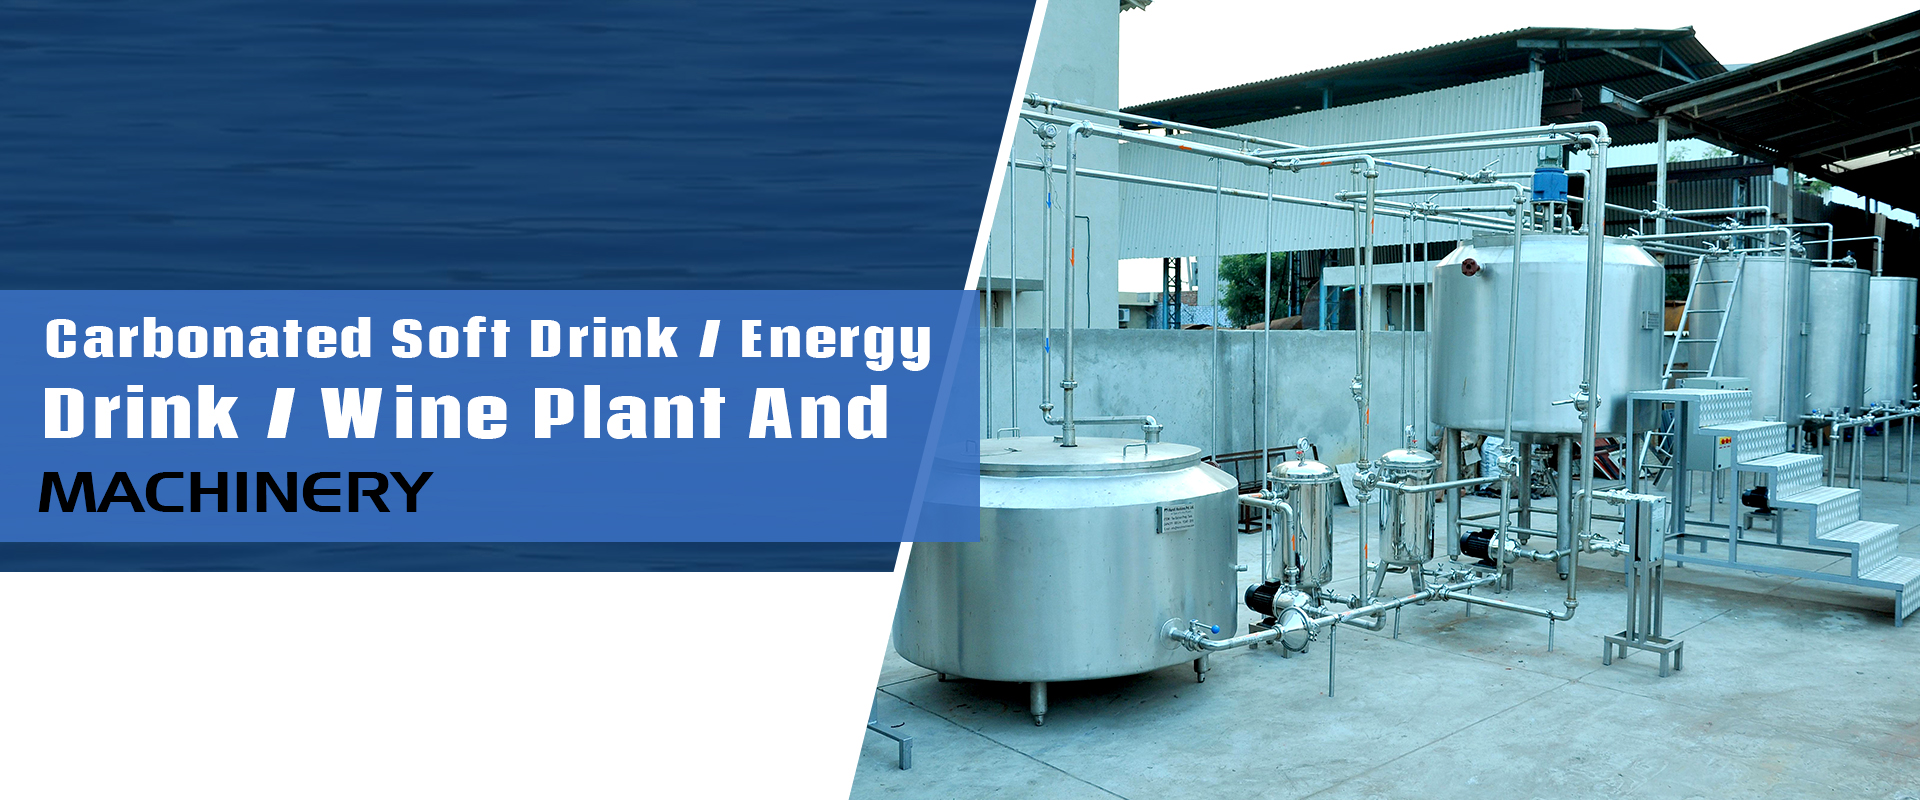 Carbonated Soft Drink / Energy Drink / Wine Plant And Machinery In Hubli